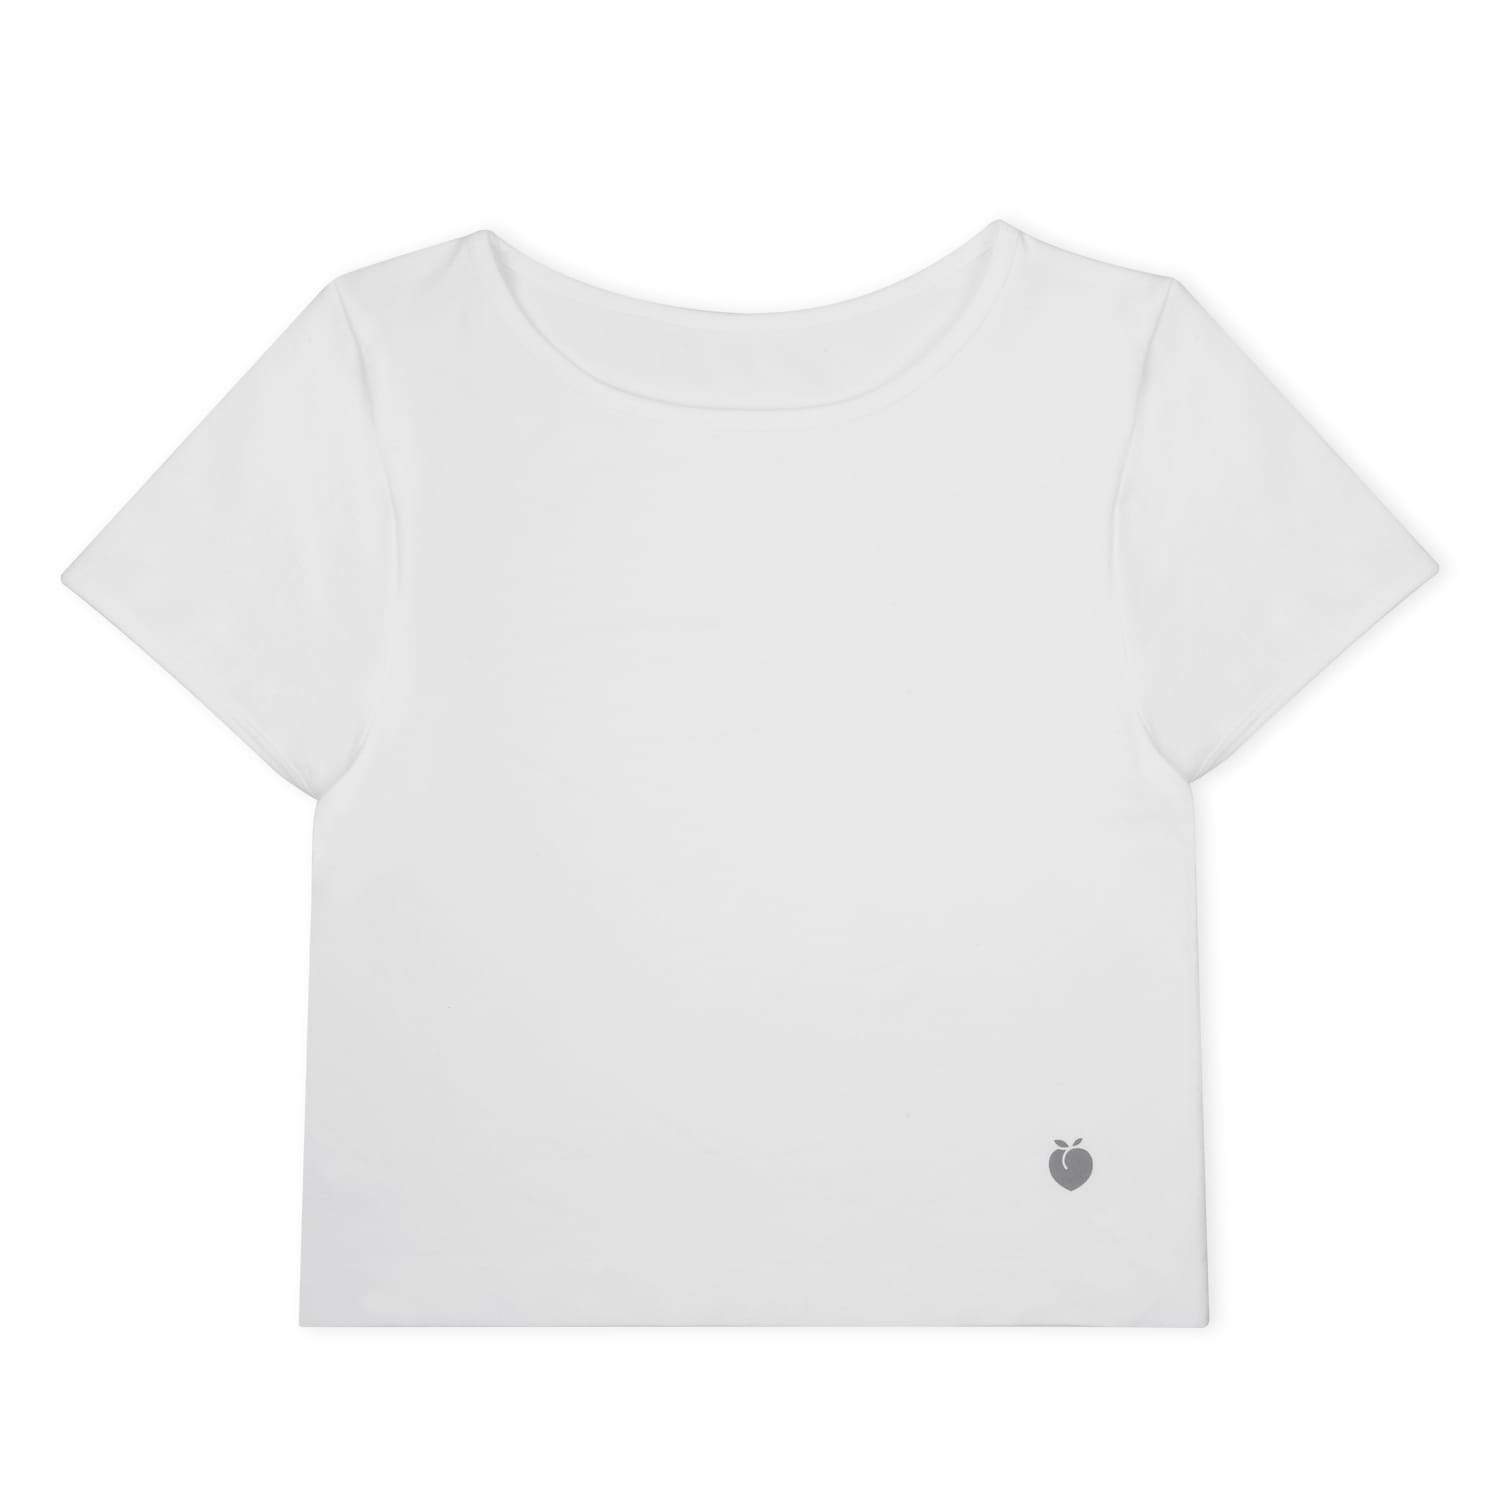 Performance Crop Tee - White